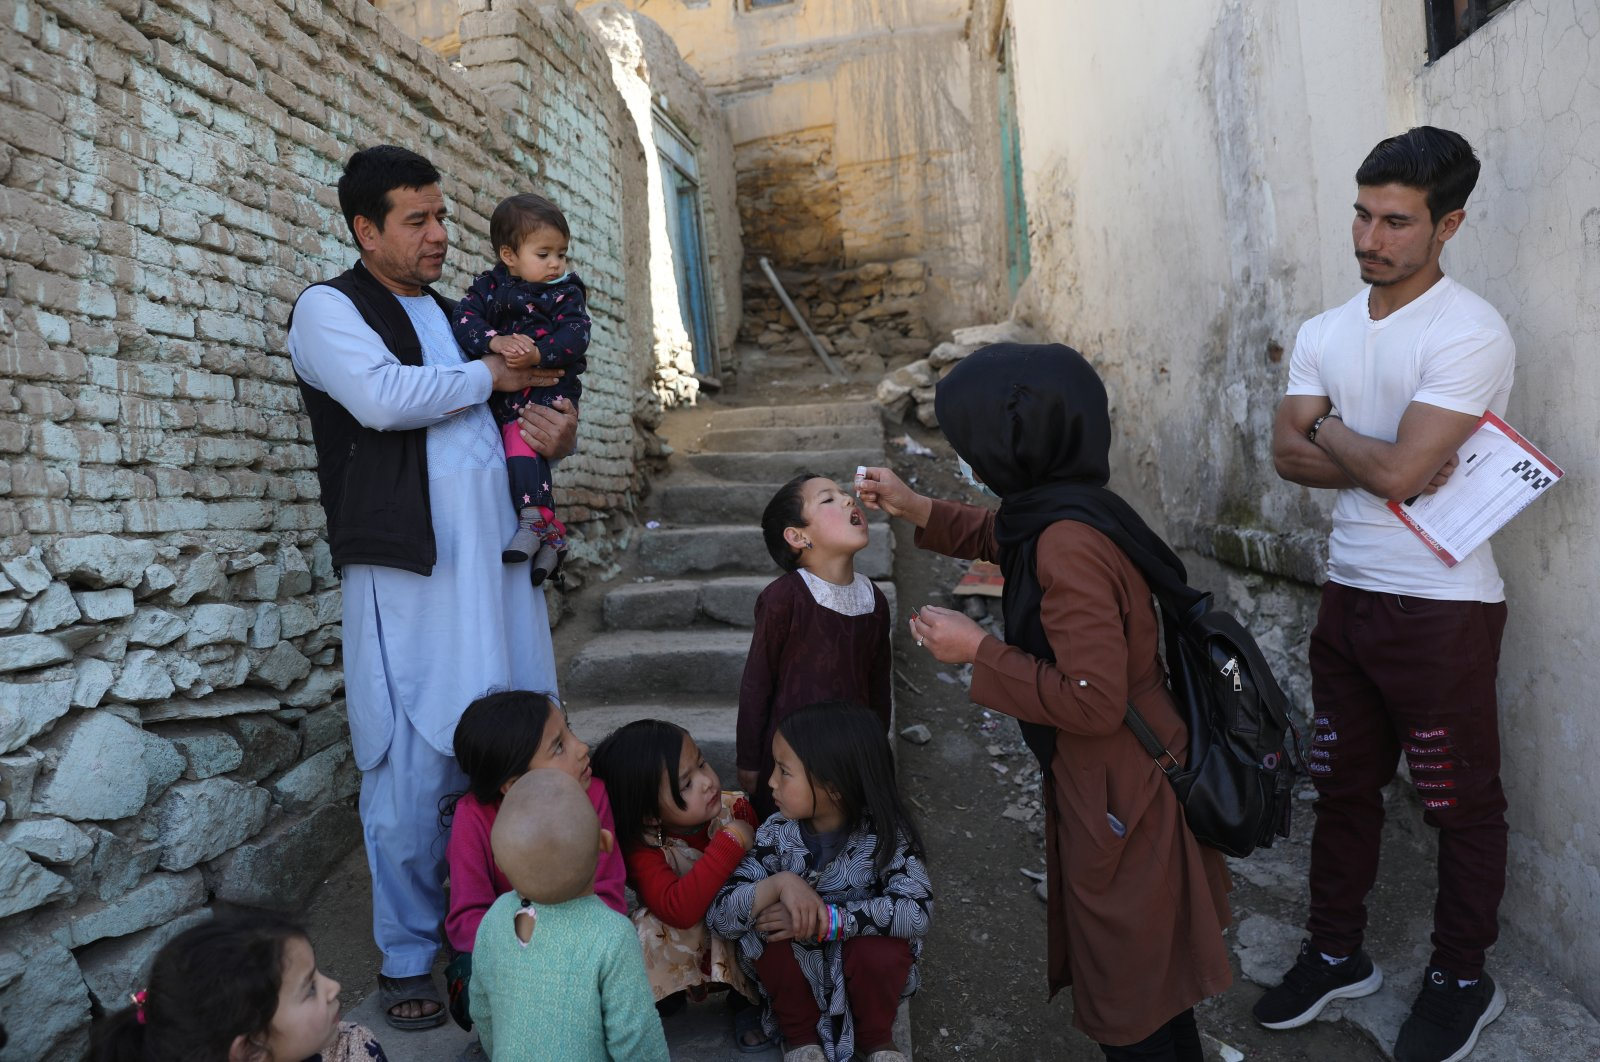 Shabana Maani, a volunteer polio vaccinator, gives a polio vaccination to a child in the old part of Kabul, Afghanistan, March 29, 2021. (AP Photo)